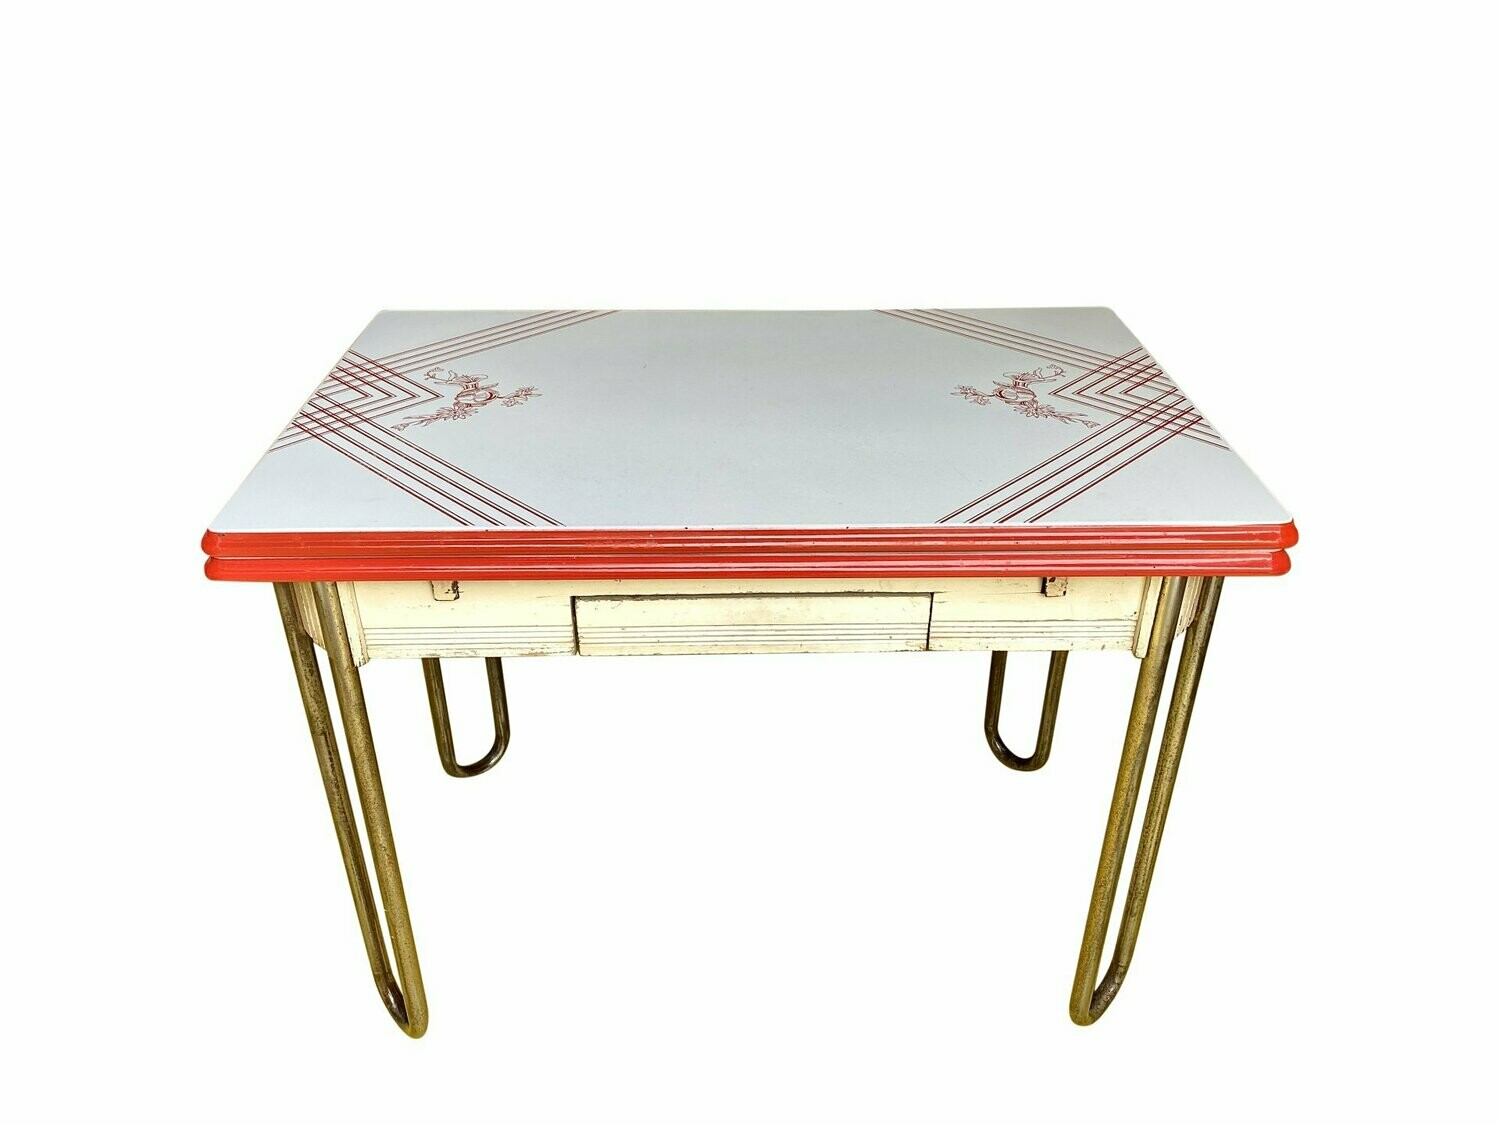 1940s Red White Enamel Top Table Metal Legs And Expandable Sides